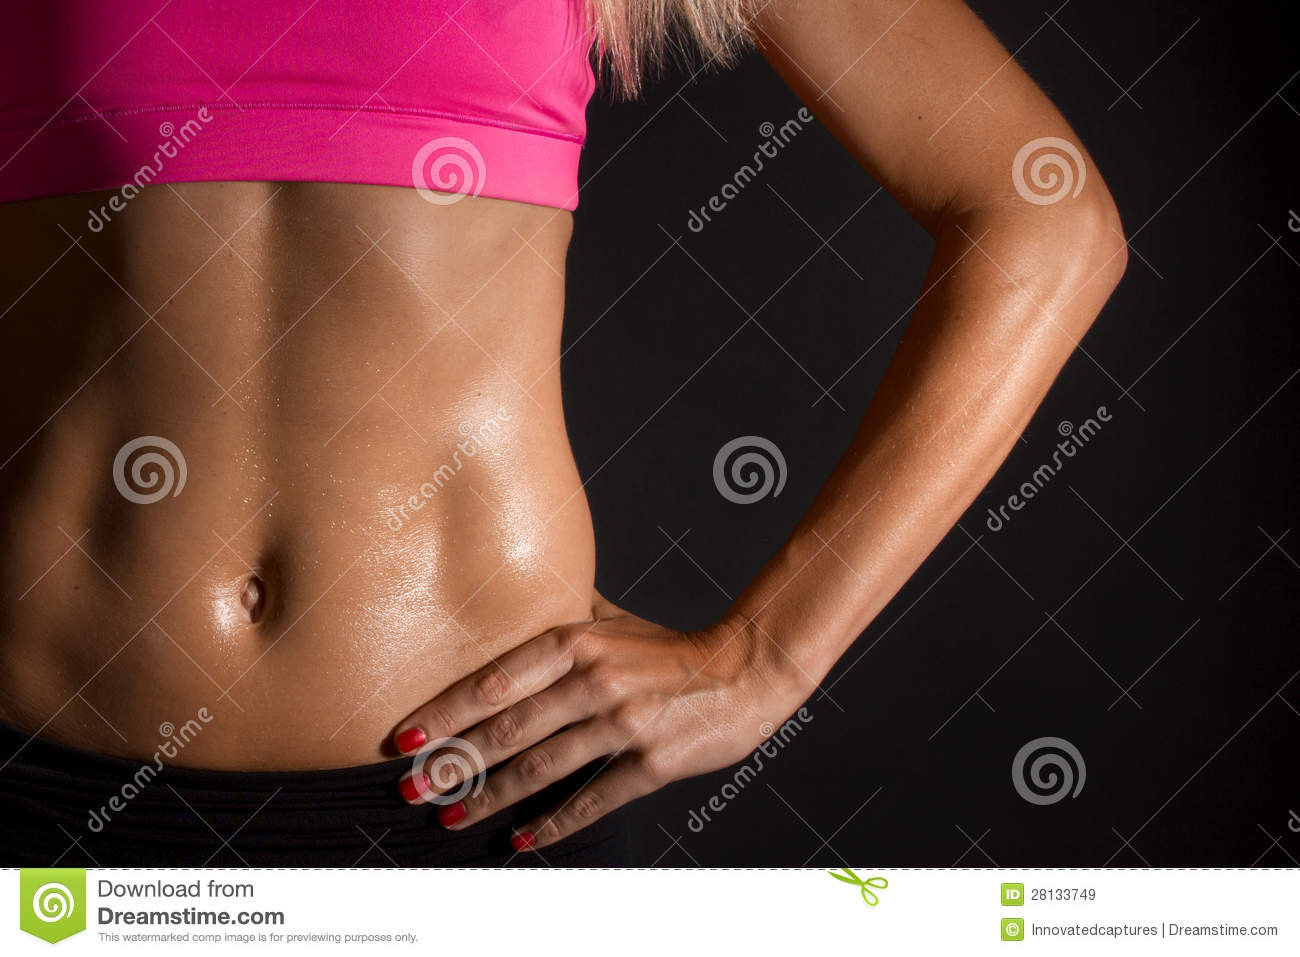 Female Abs Royalty Free Stock Images - Image: 28133749